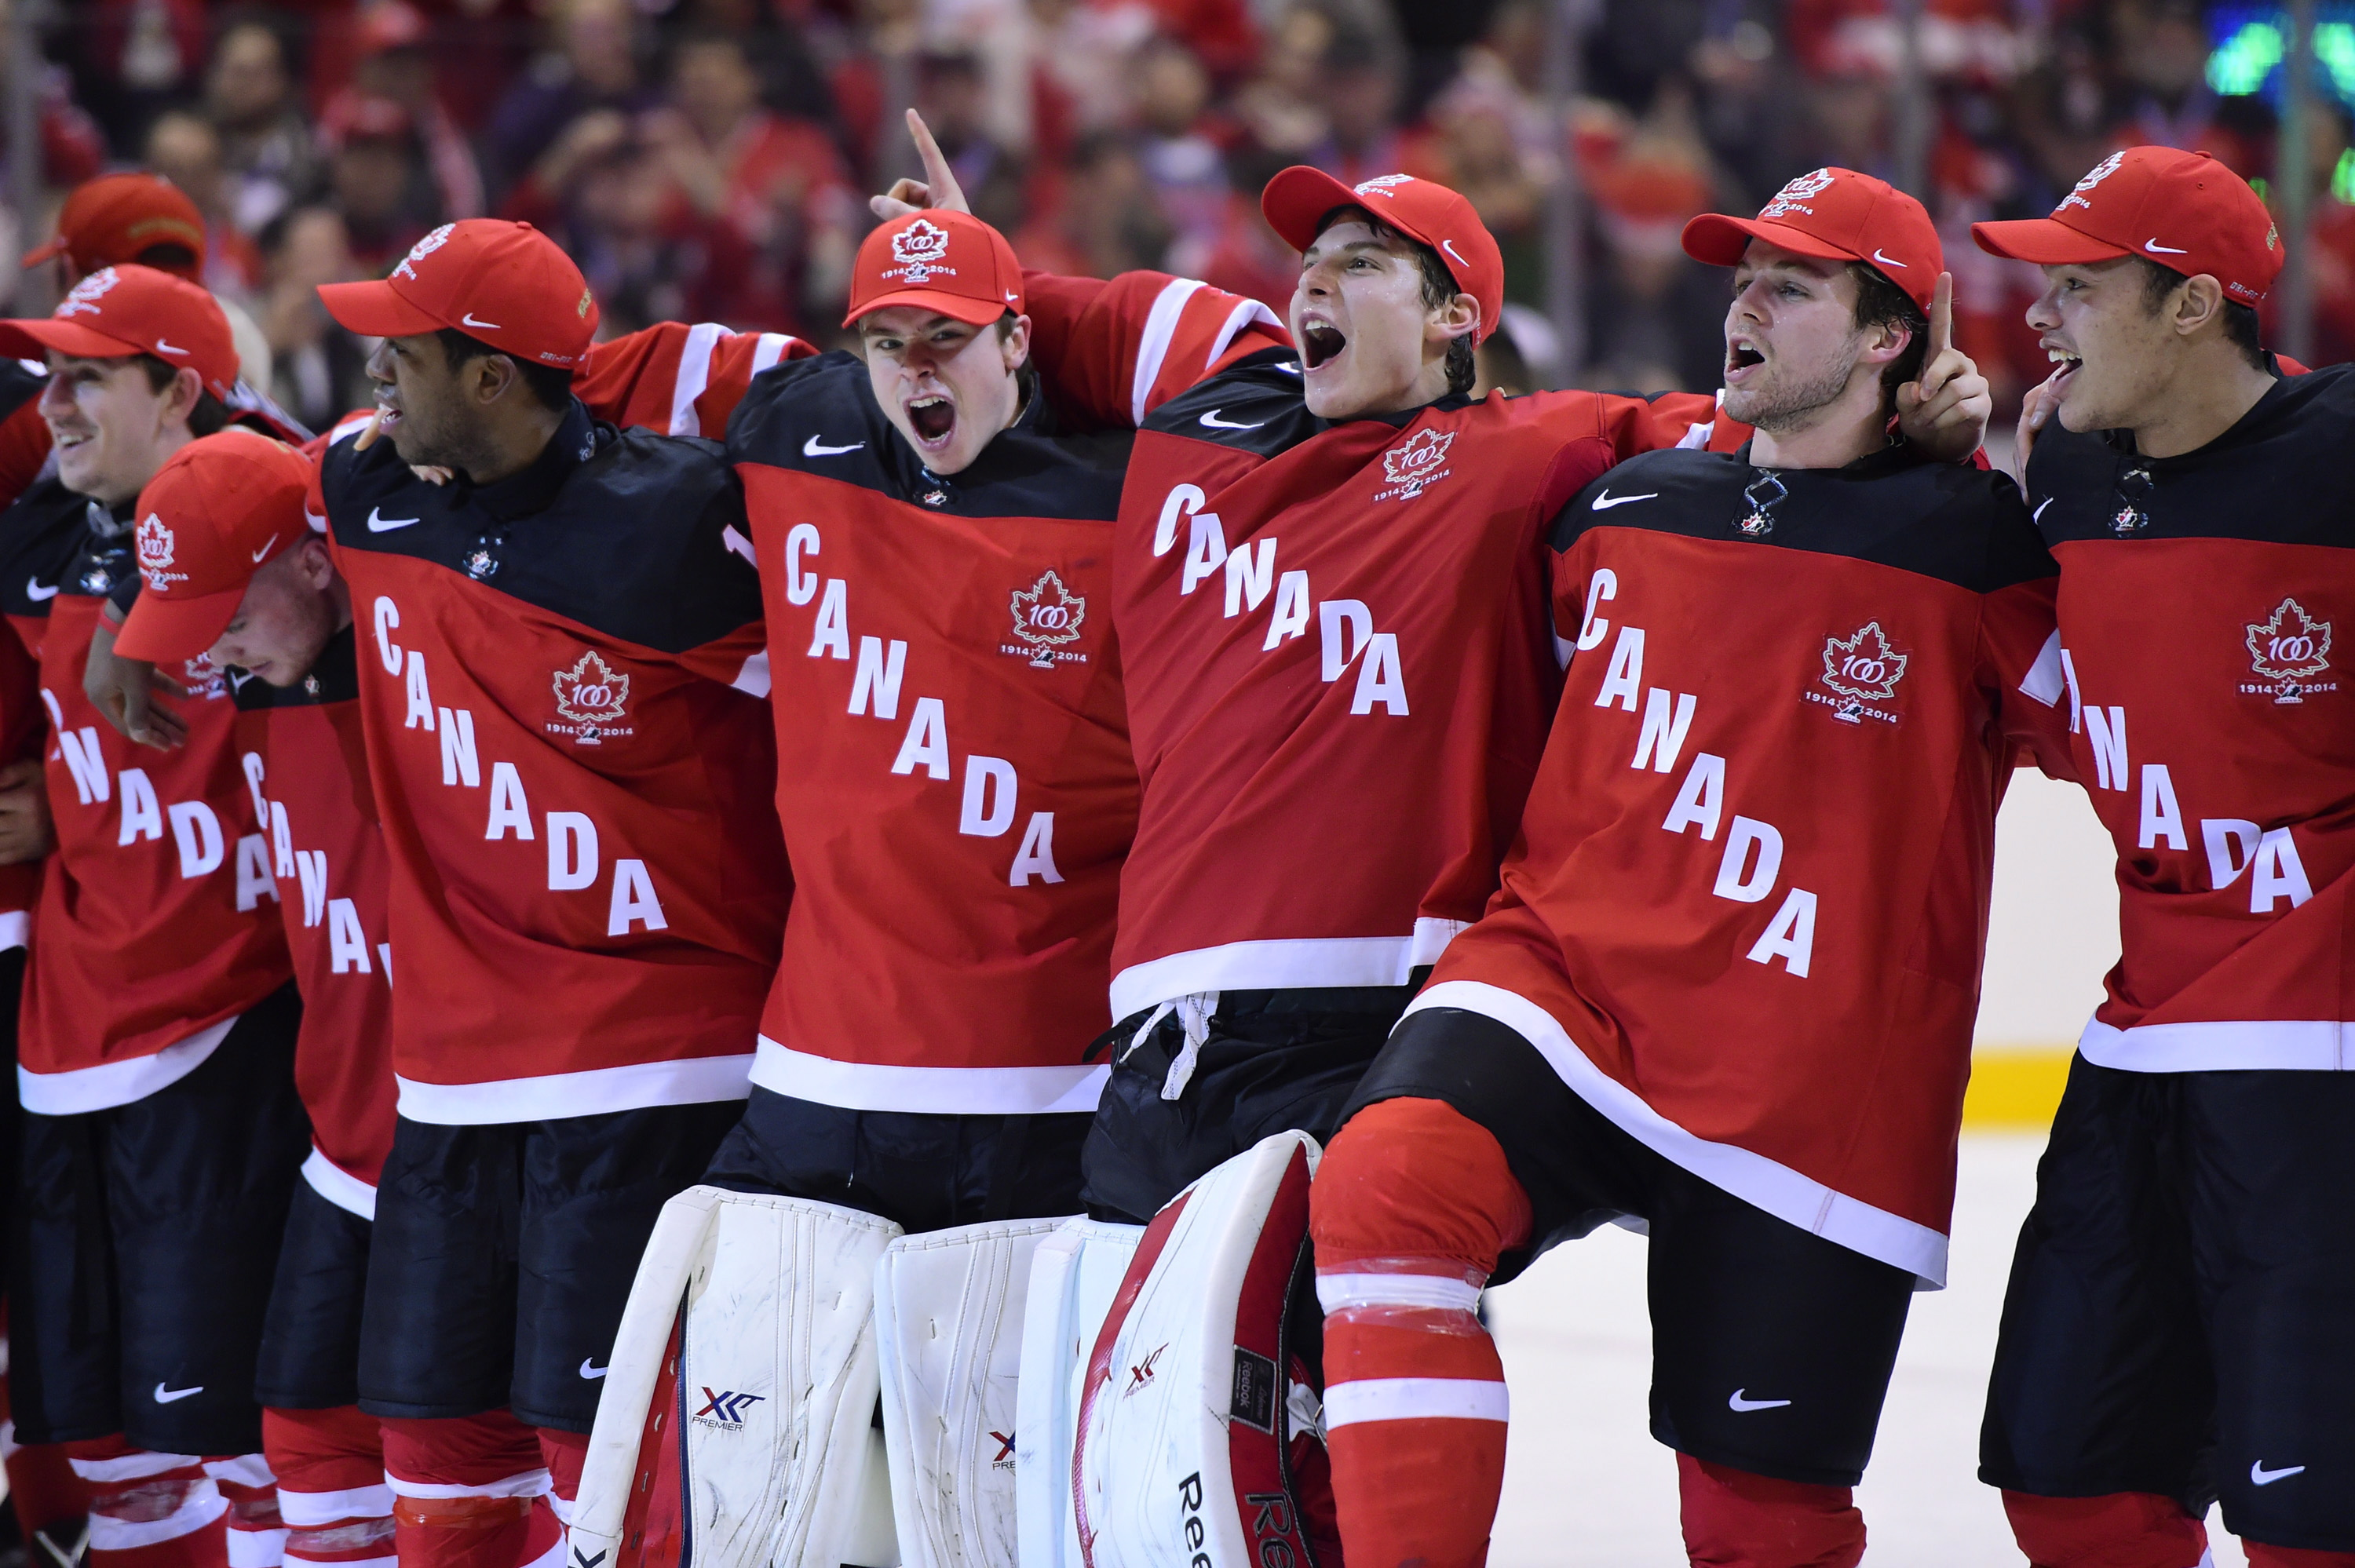 Canadian players celebrate Canada's 5-4 win over Russia during the gold medal game hockey action at the IIHF World Junior Championship in Toronto on Jan. 5, 2015. THE CANADIAN PRESS/Frank Gunn